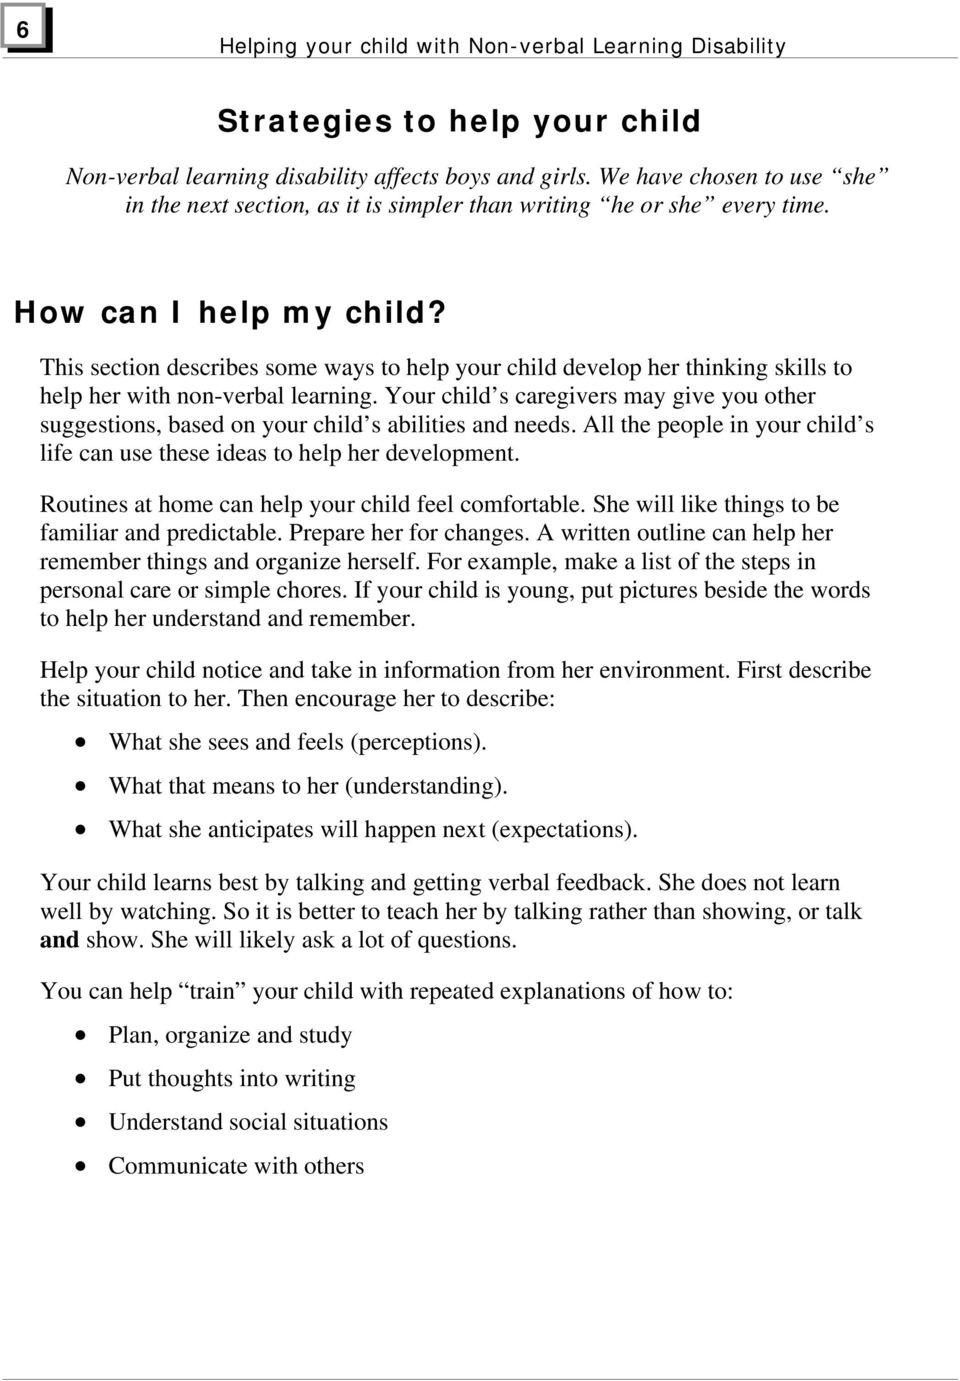 This section describes some ways to help your child develop her thinking skills to help her with non-verbal learning.